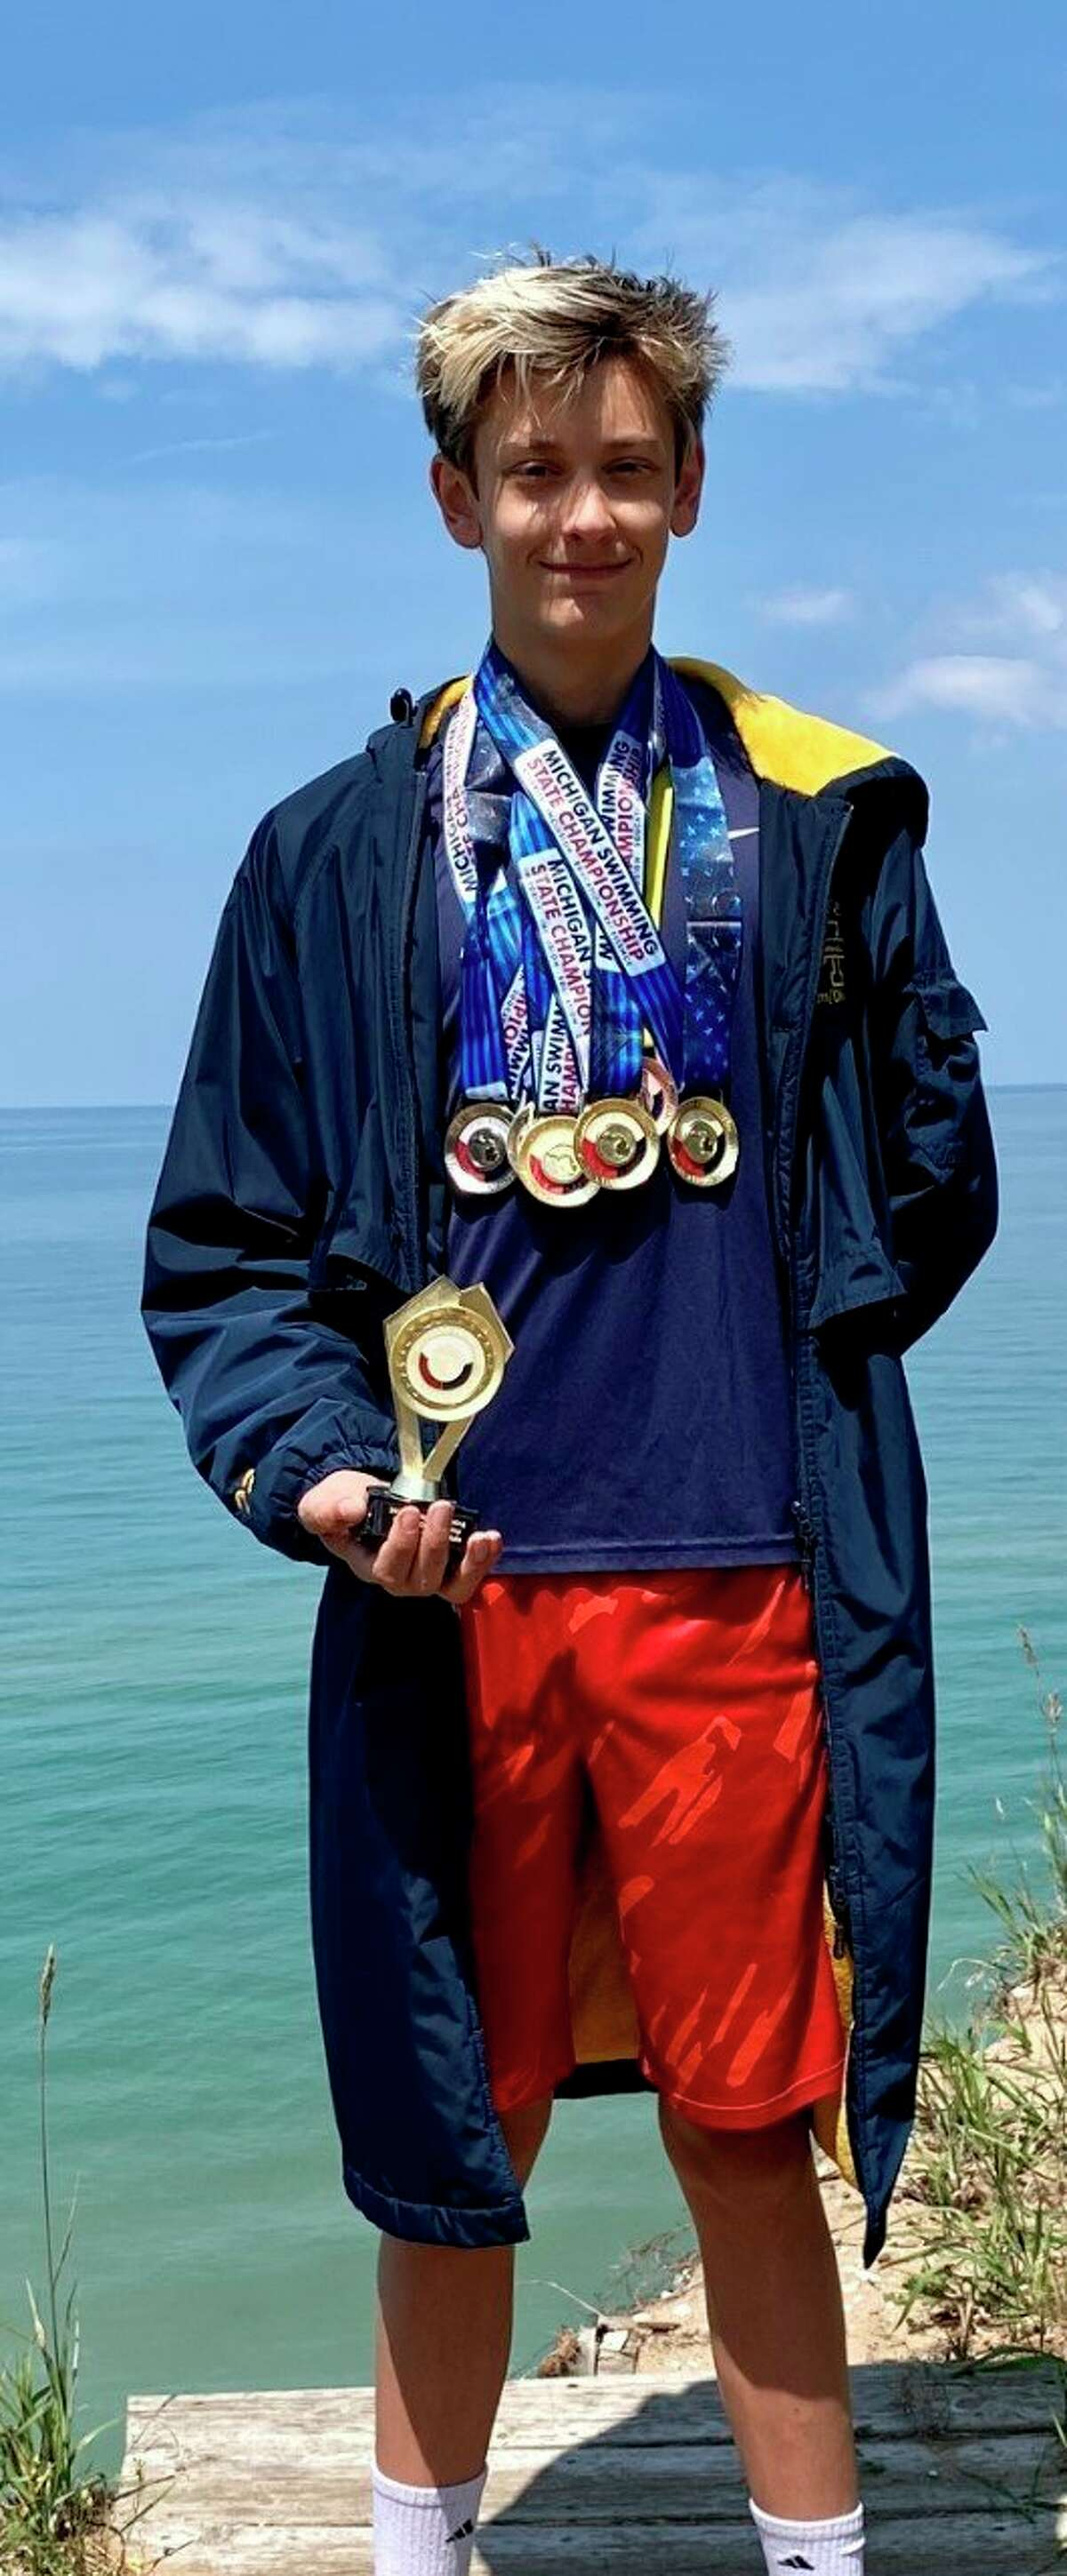 Alex Lampen took home six medals and trophy after a dominant performance at the USA Swim Club State Meet in July. (Courtesy photo)